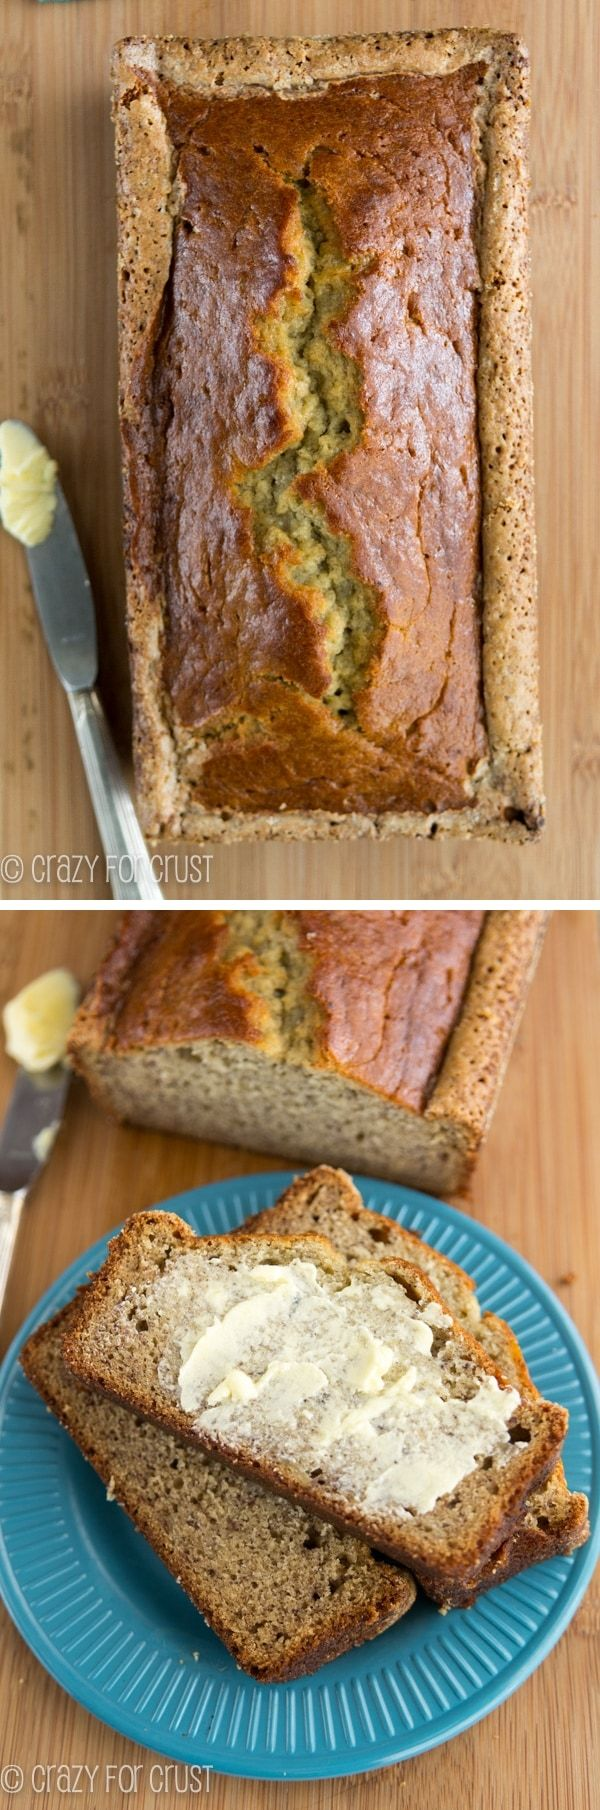 Moms banana bread crazyforcrust the perfect banana bread moms banana bread crazyforcrust the perfect banana bread recipe straight from forumfinder